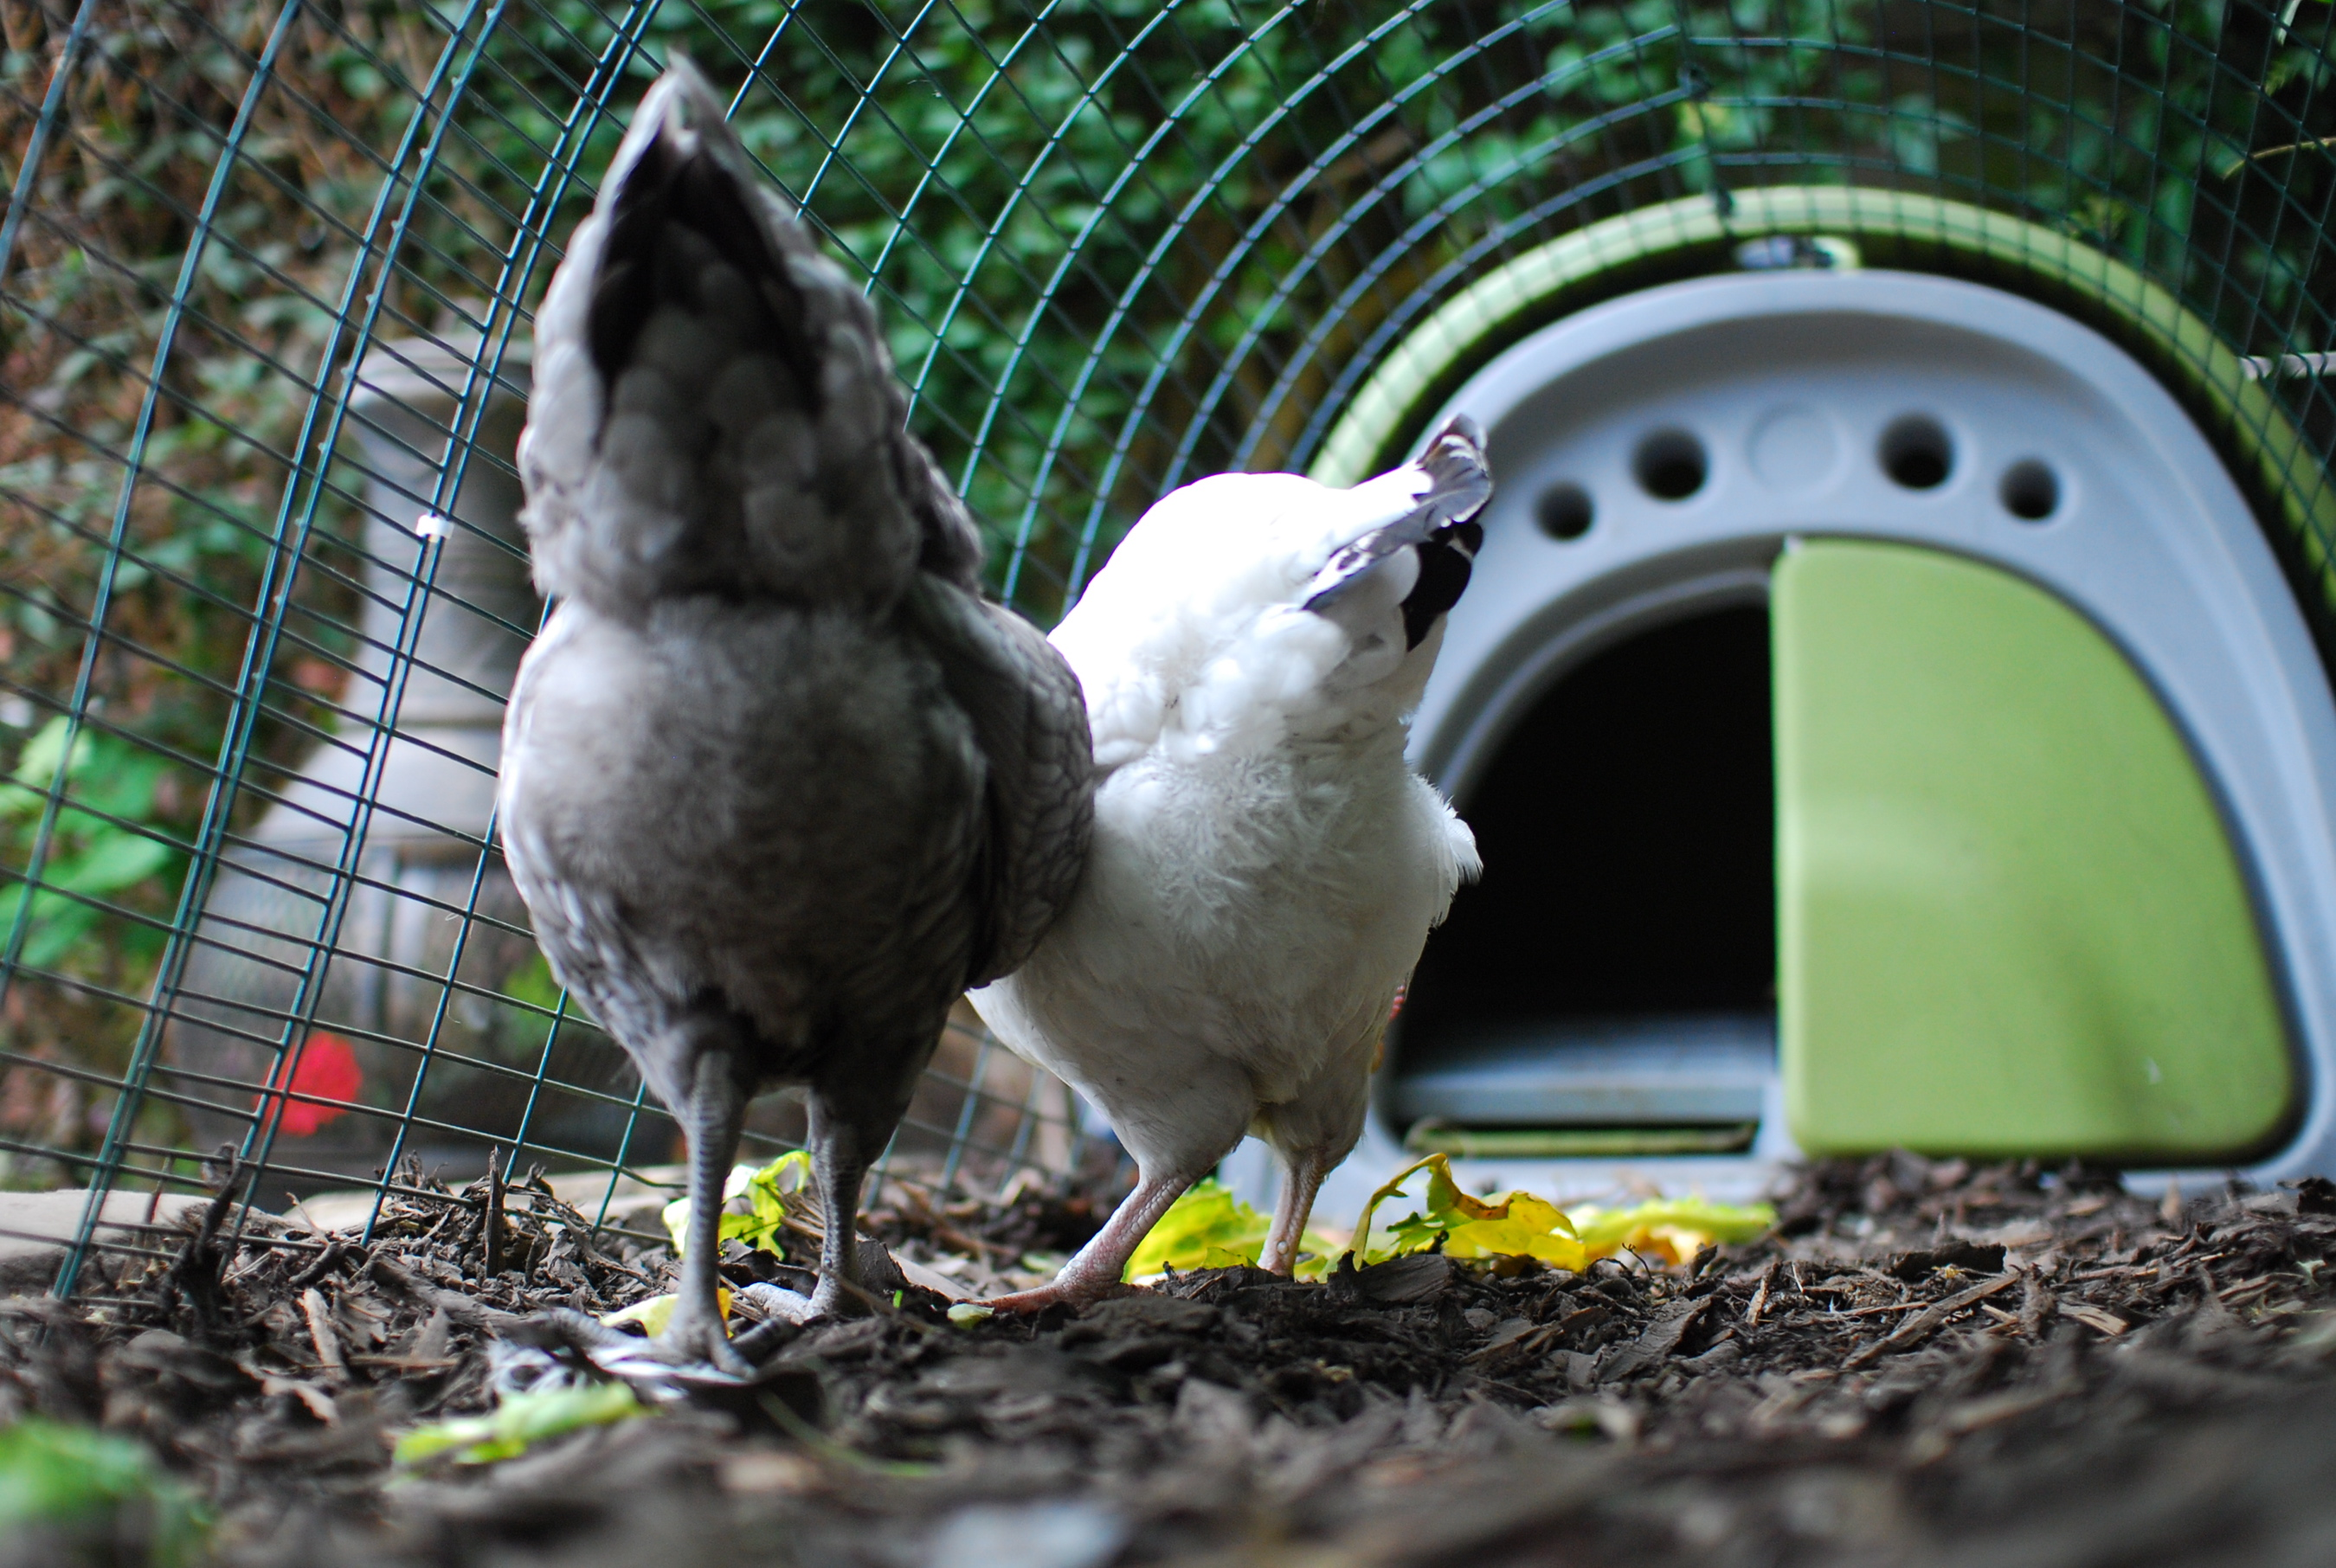 Chickens as pets